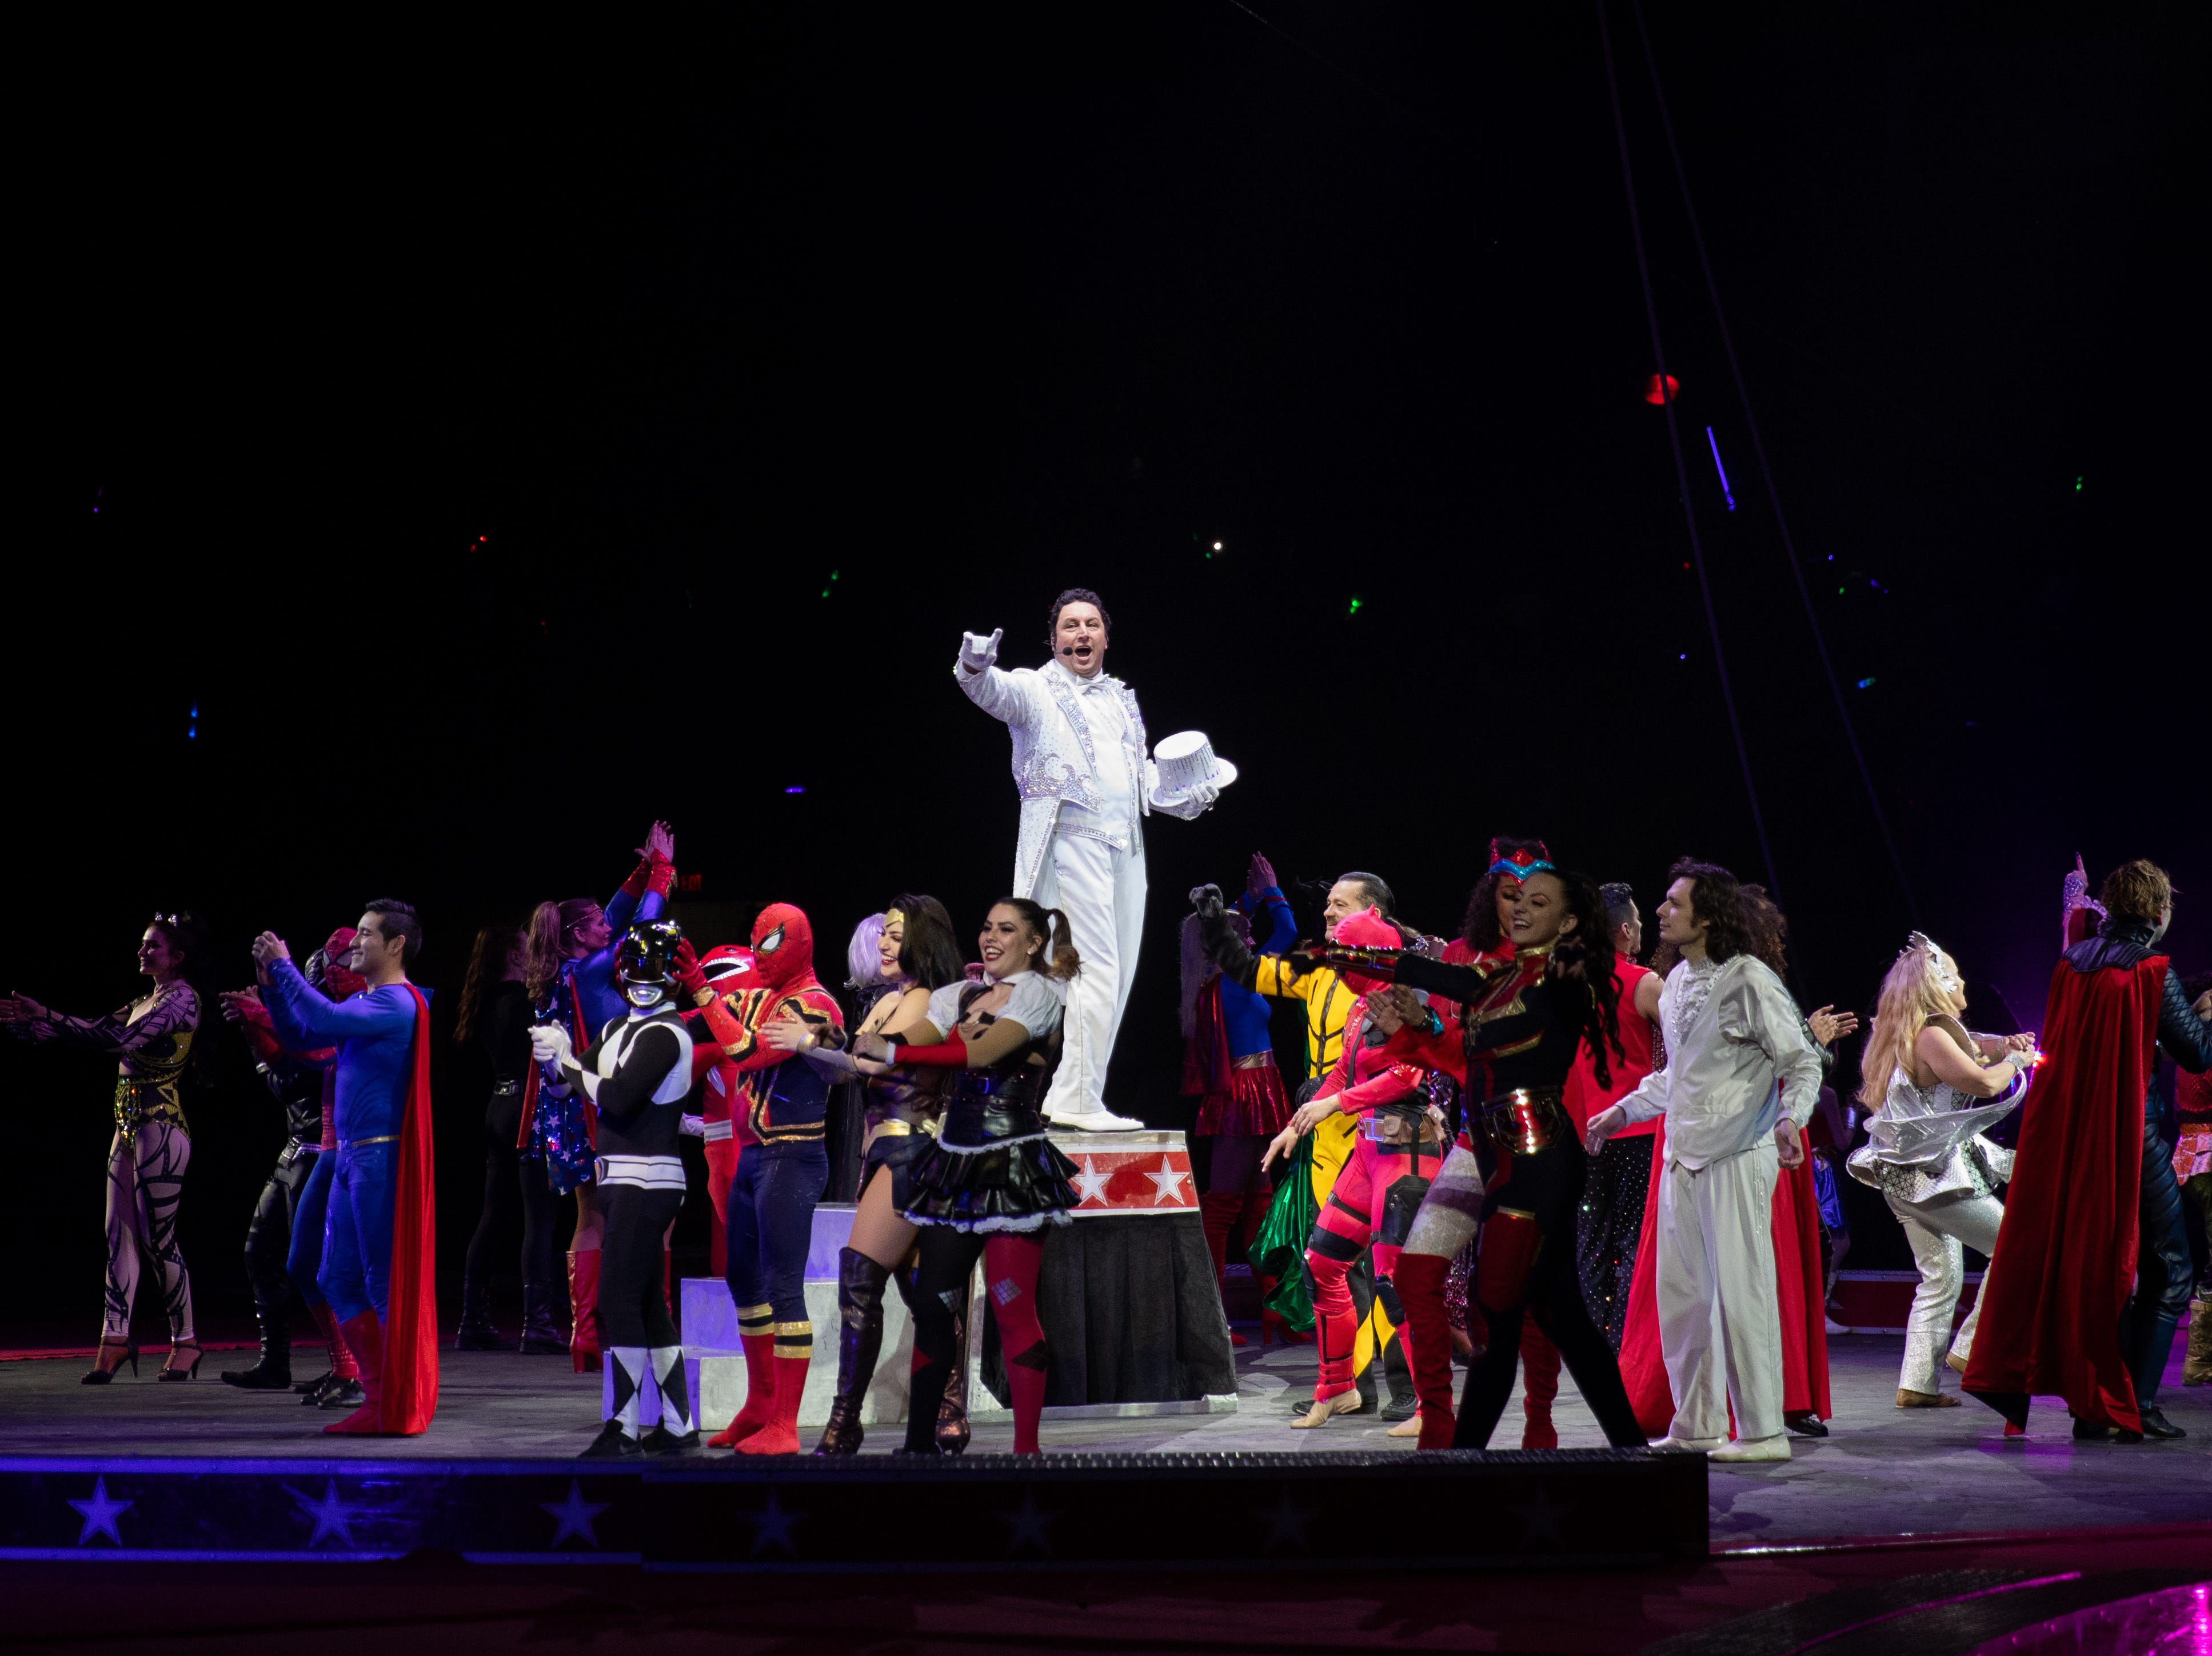 Ringmaster and performers come out to thank the crowd at the Kosair Shrine Circus, Saturday, Feb. 9, 2019 in Louisville Ky.